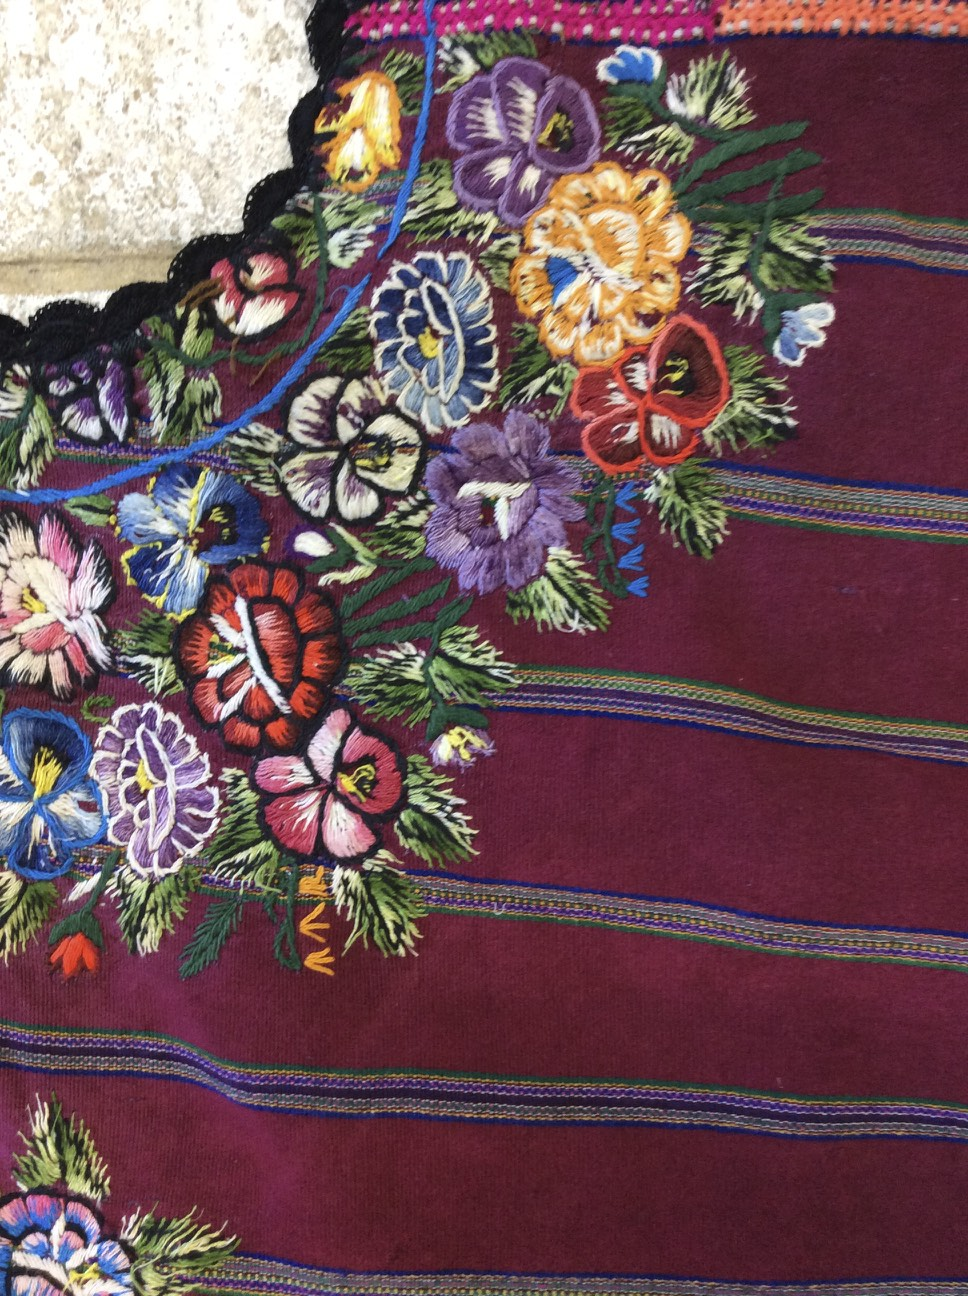 Embroidery on a huipil from Guatemala.